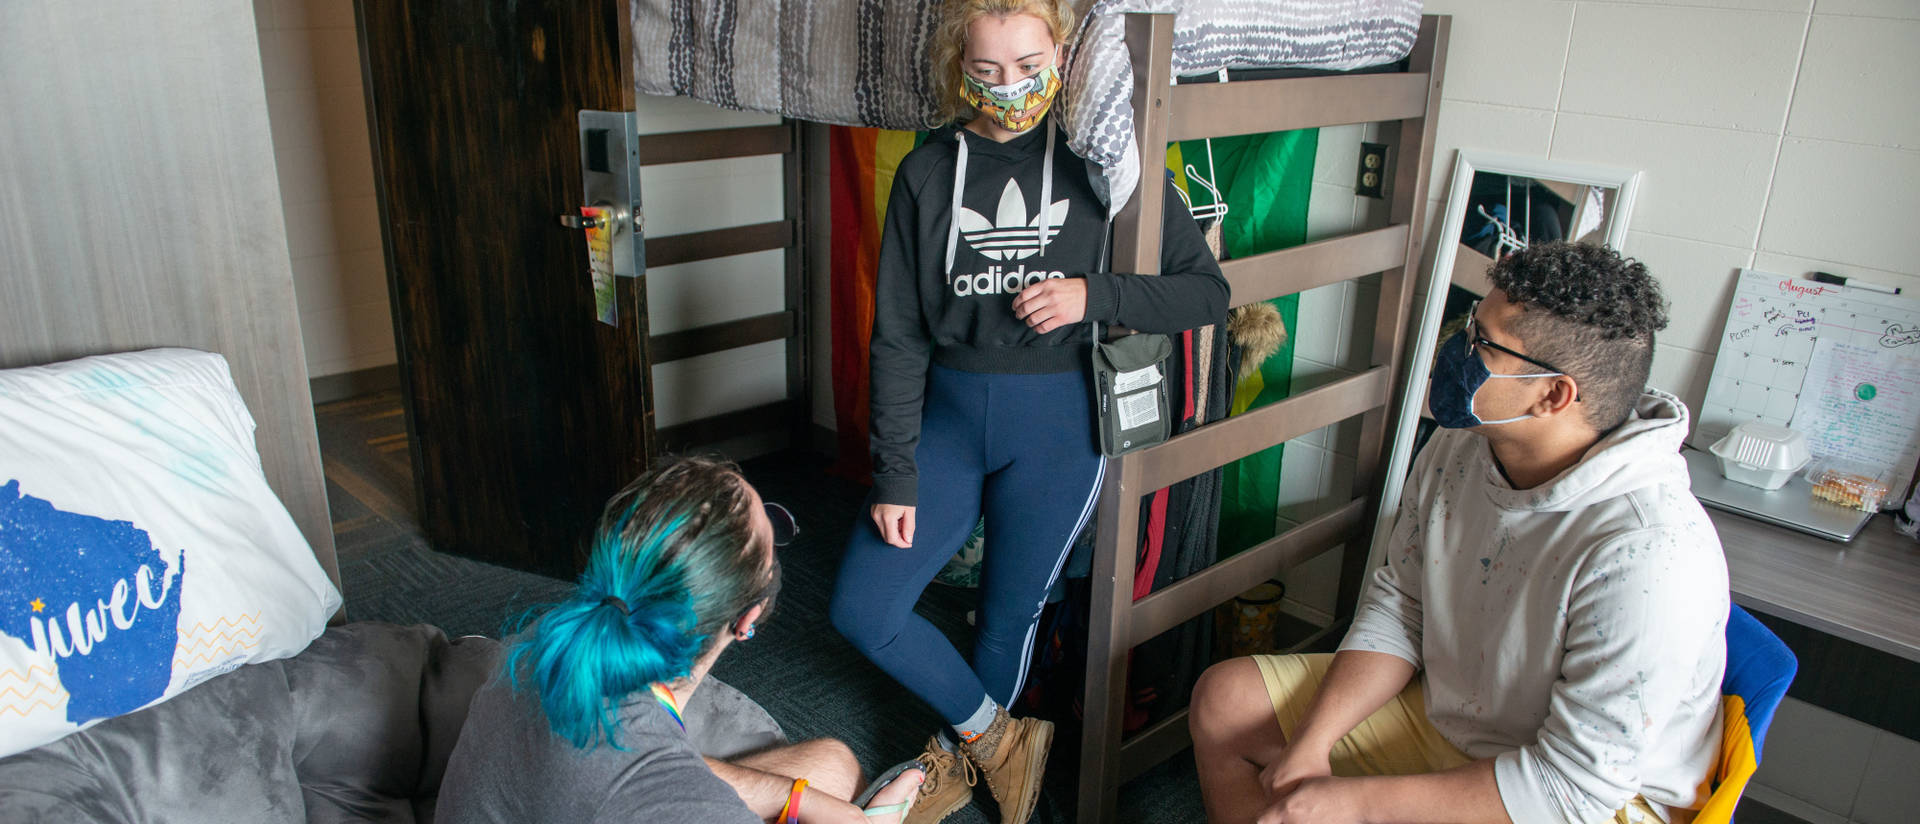 Students in dorm during pandemic